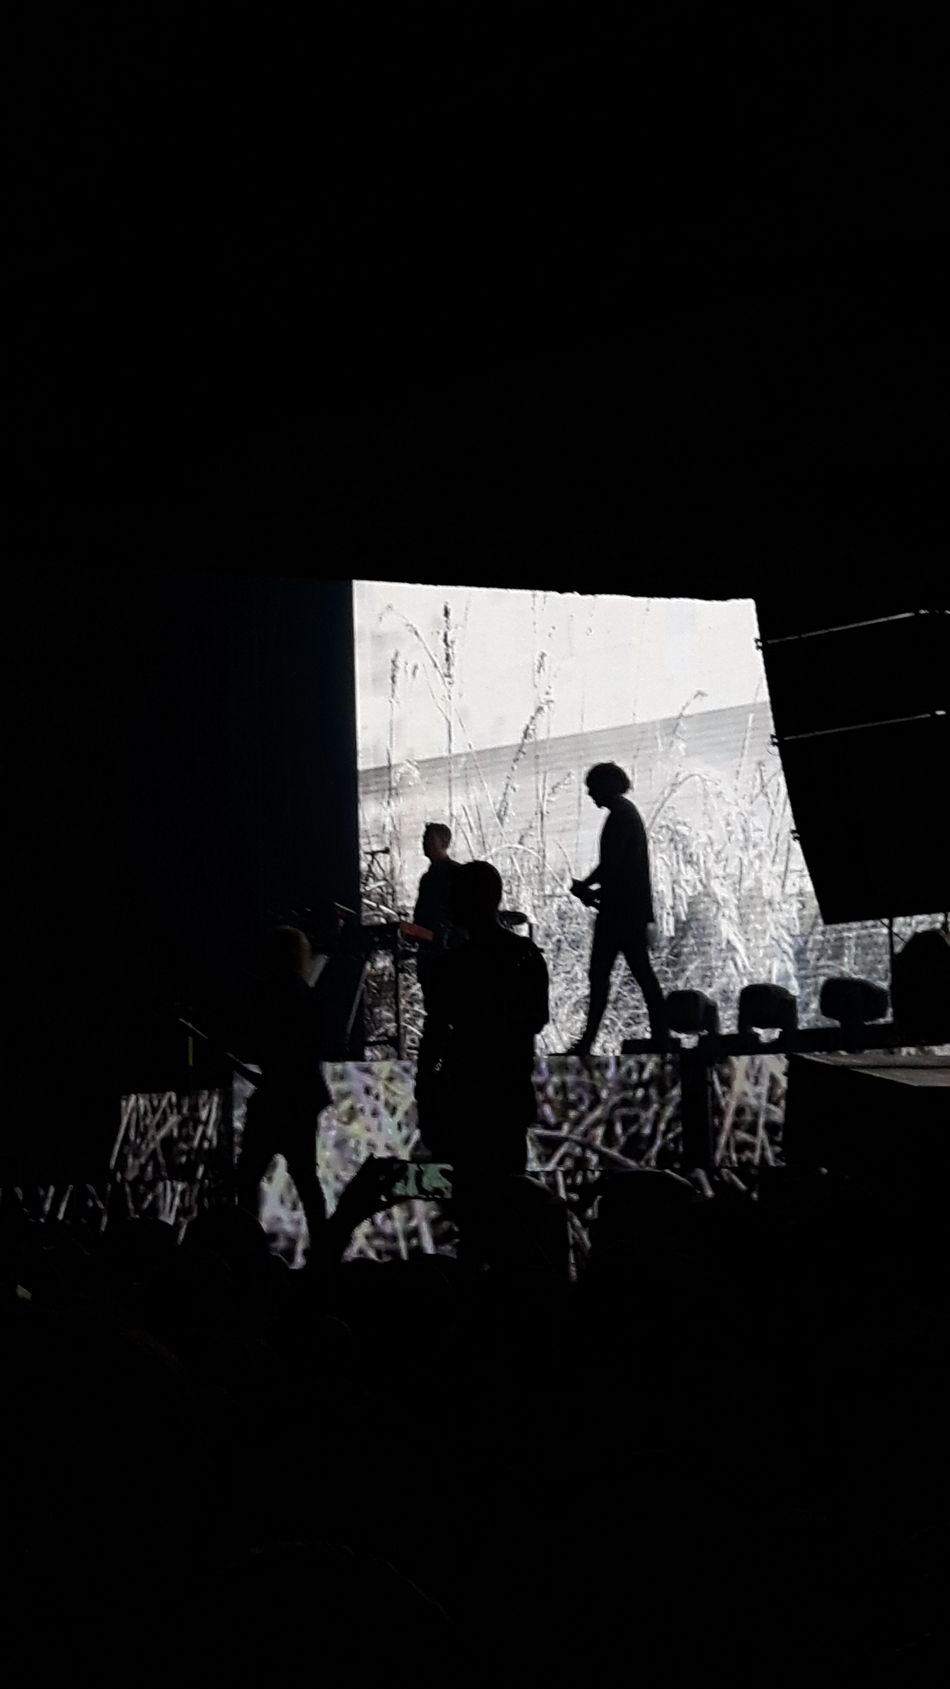 Silhouette Indoors  People Only Men Concertphotography Columbiahalle Berlin Favorite Band Adult Day Inlove